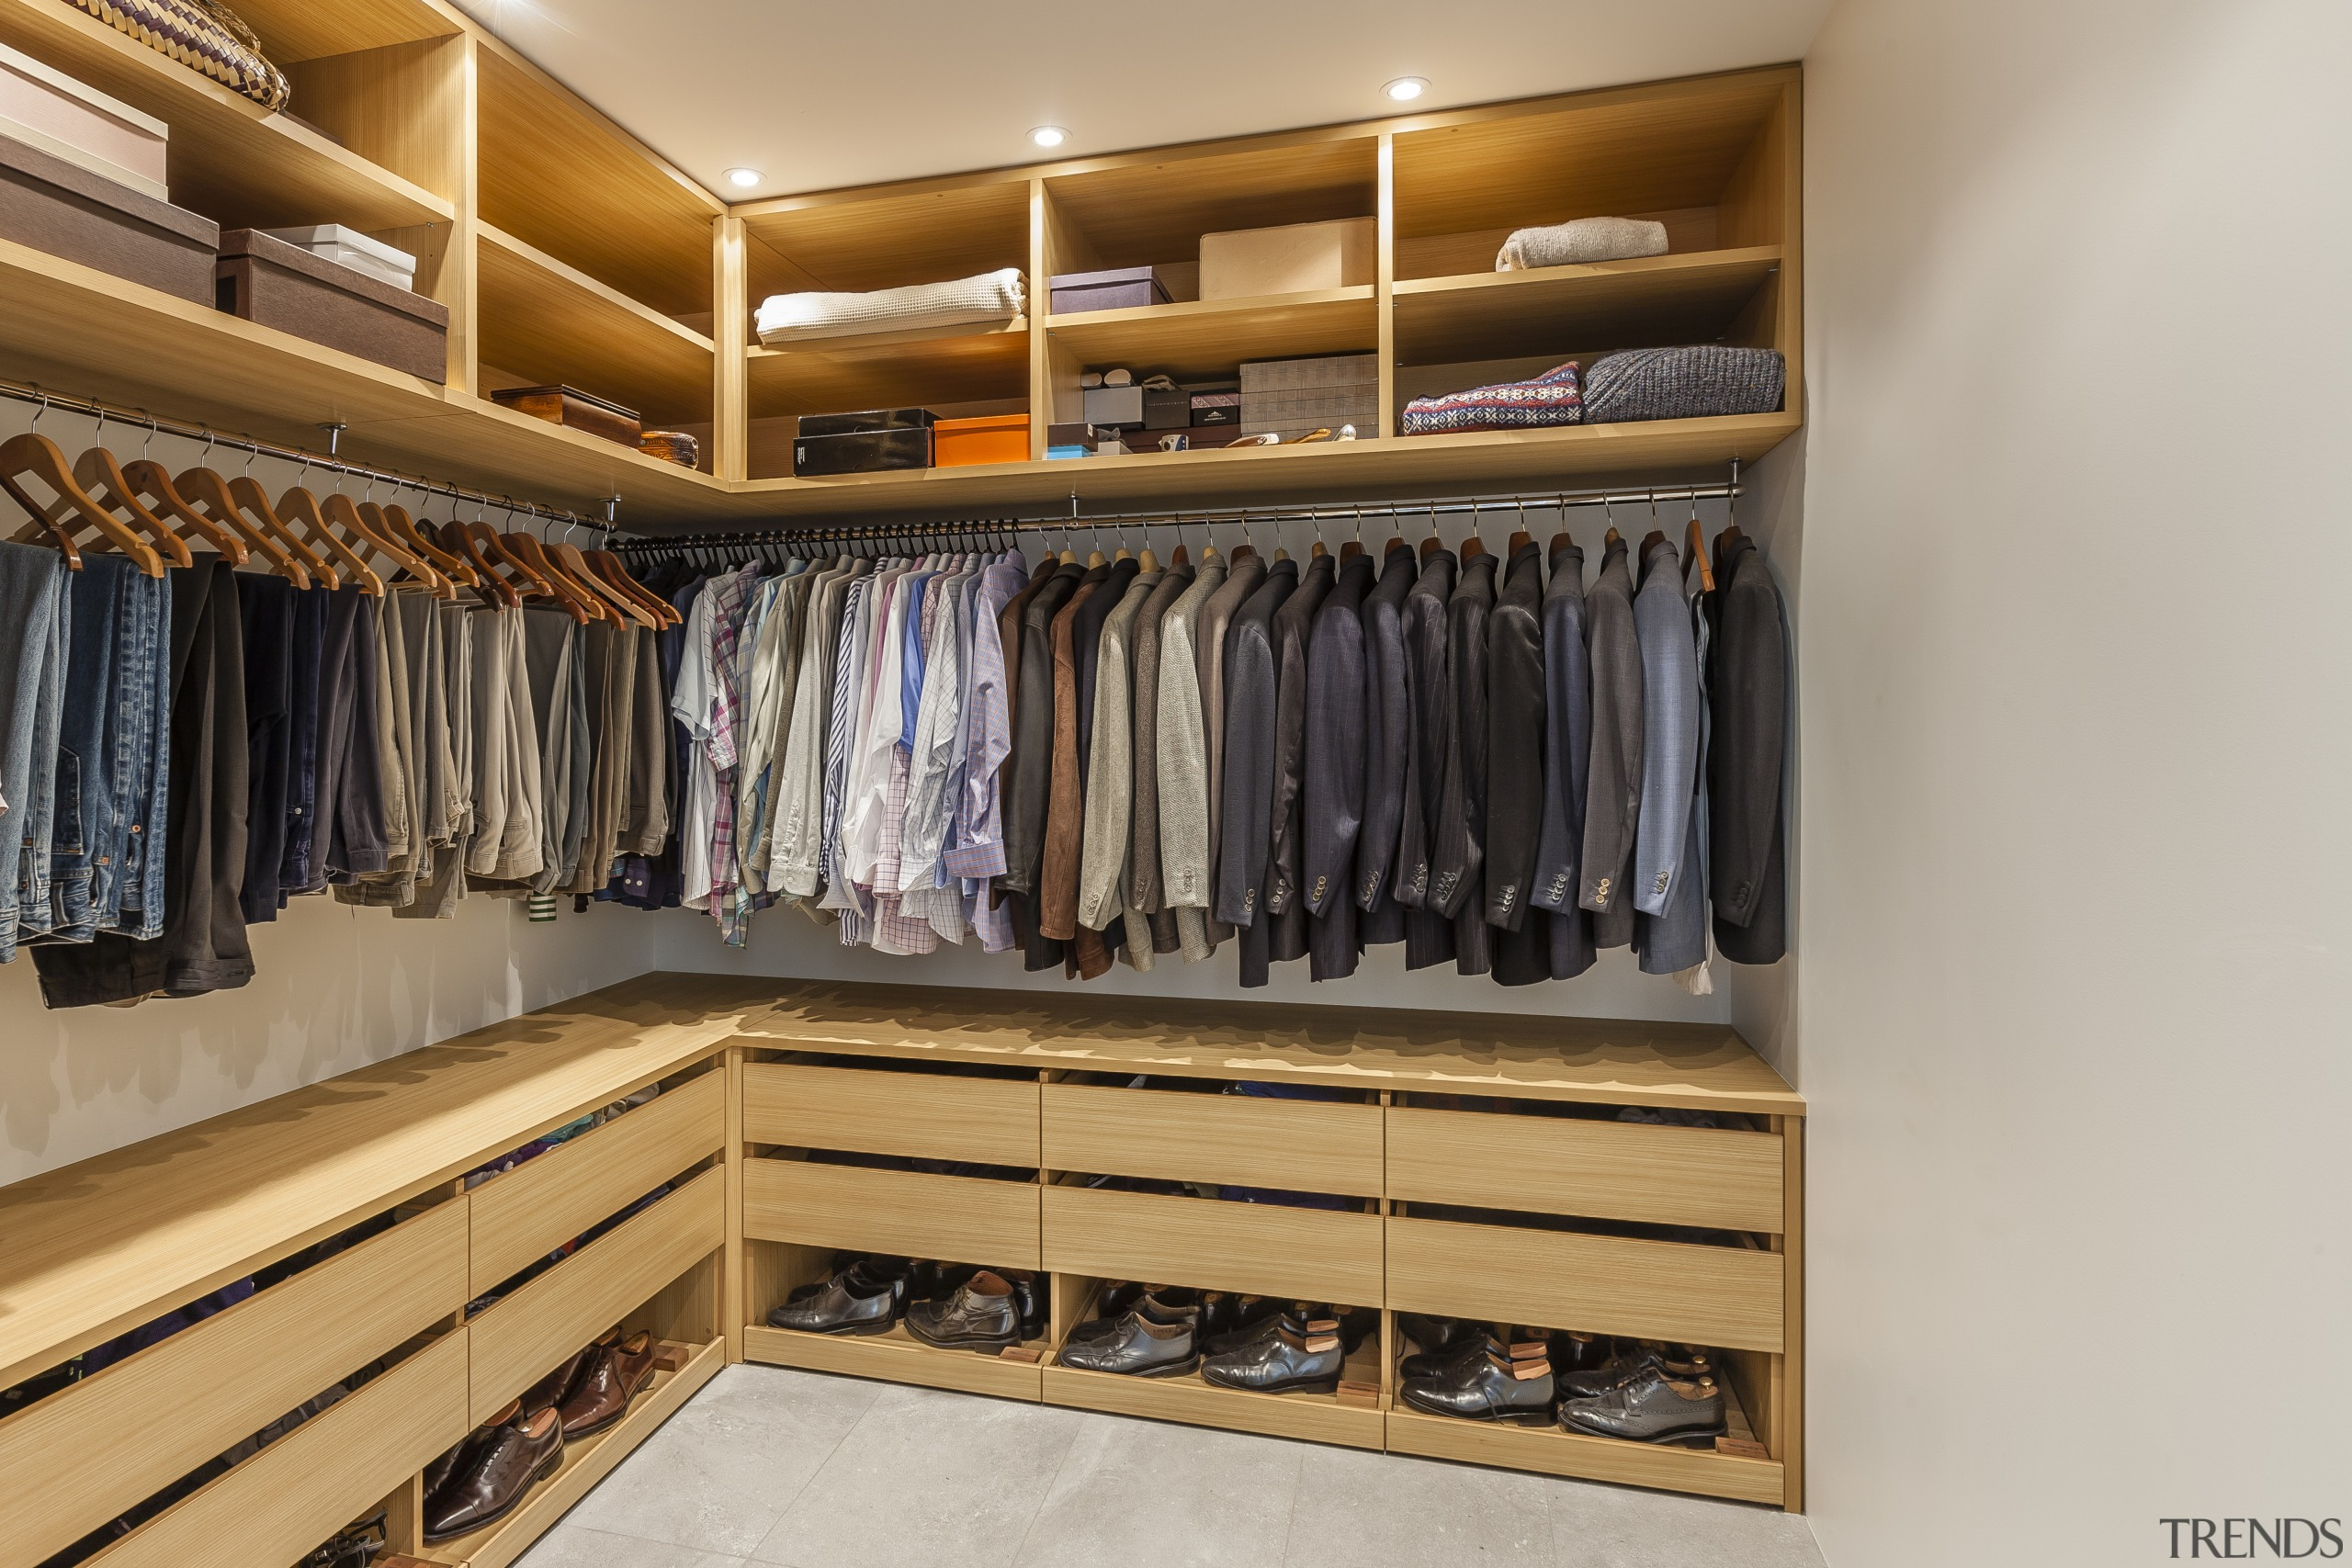 ​​​​​​​Bespoke, no-space-wasted wardrobe cabinetry by RH Cabinetmakers ensures boutique, closet, furniture, room, wardrobe, bespoke cabinetry, custom cabinetry, RH Cabinetry